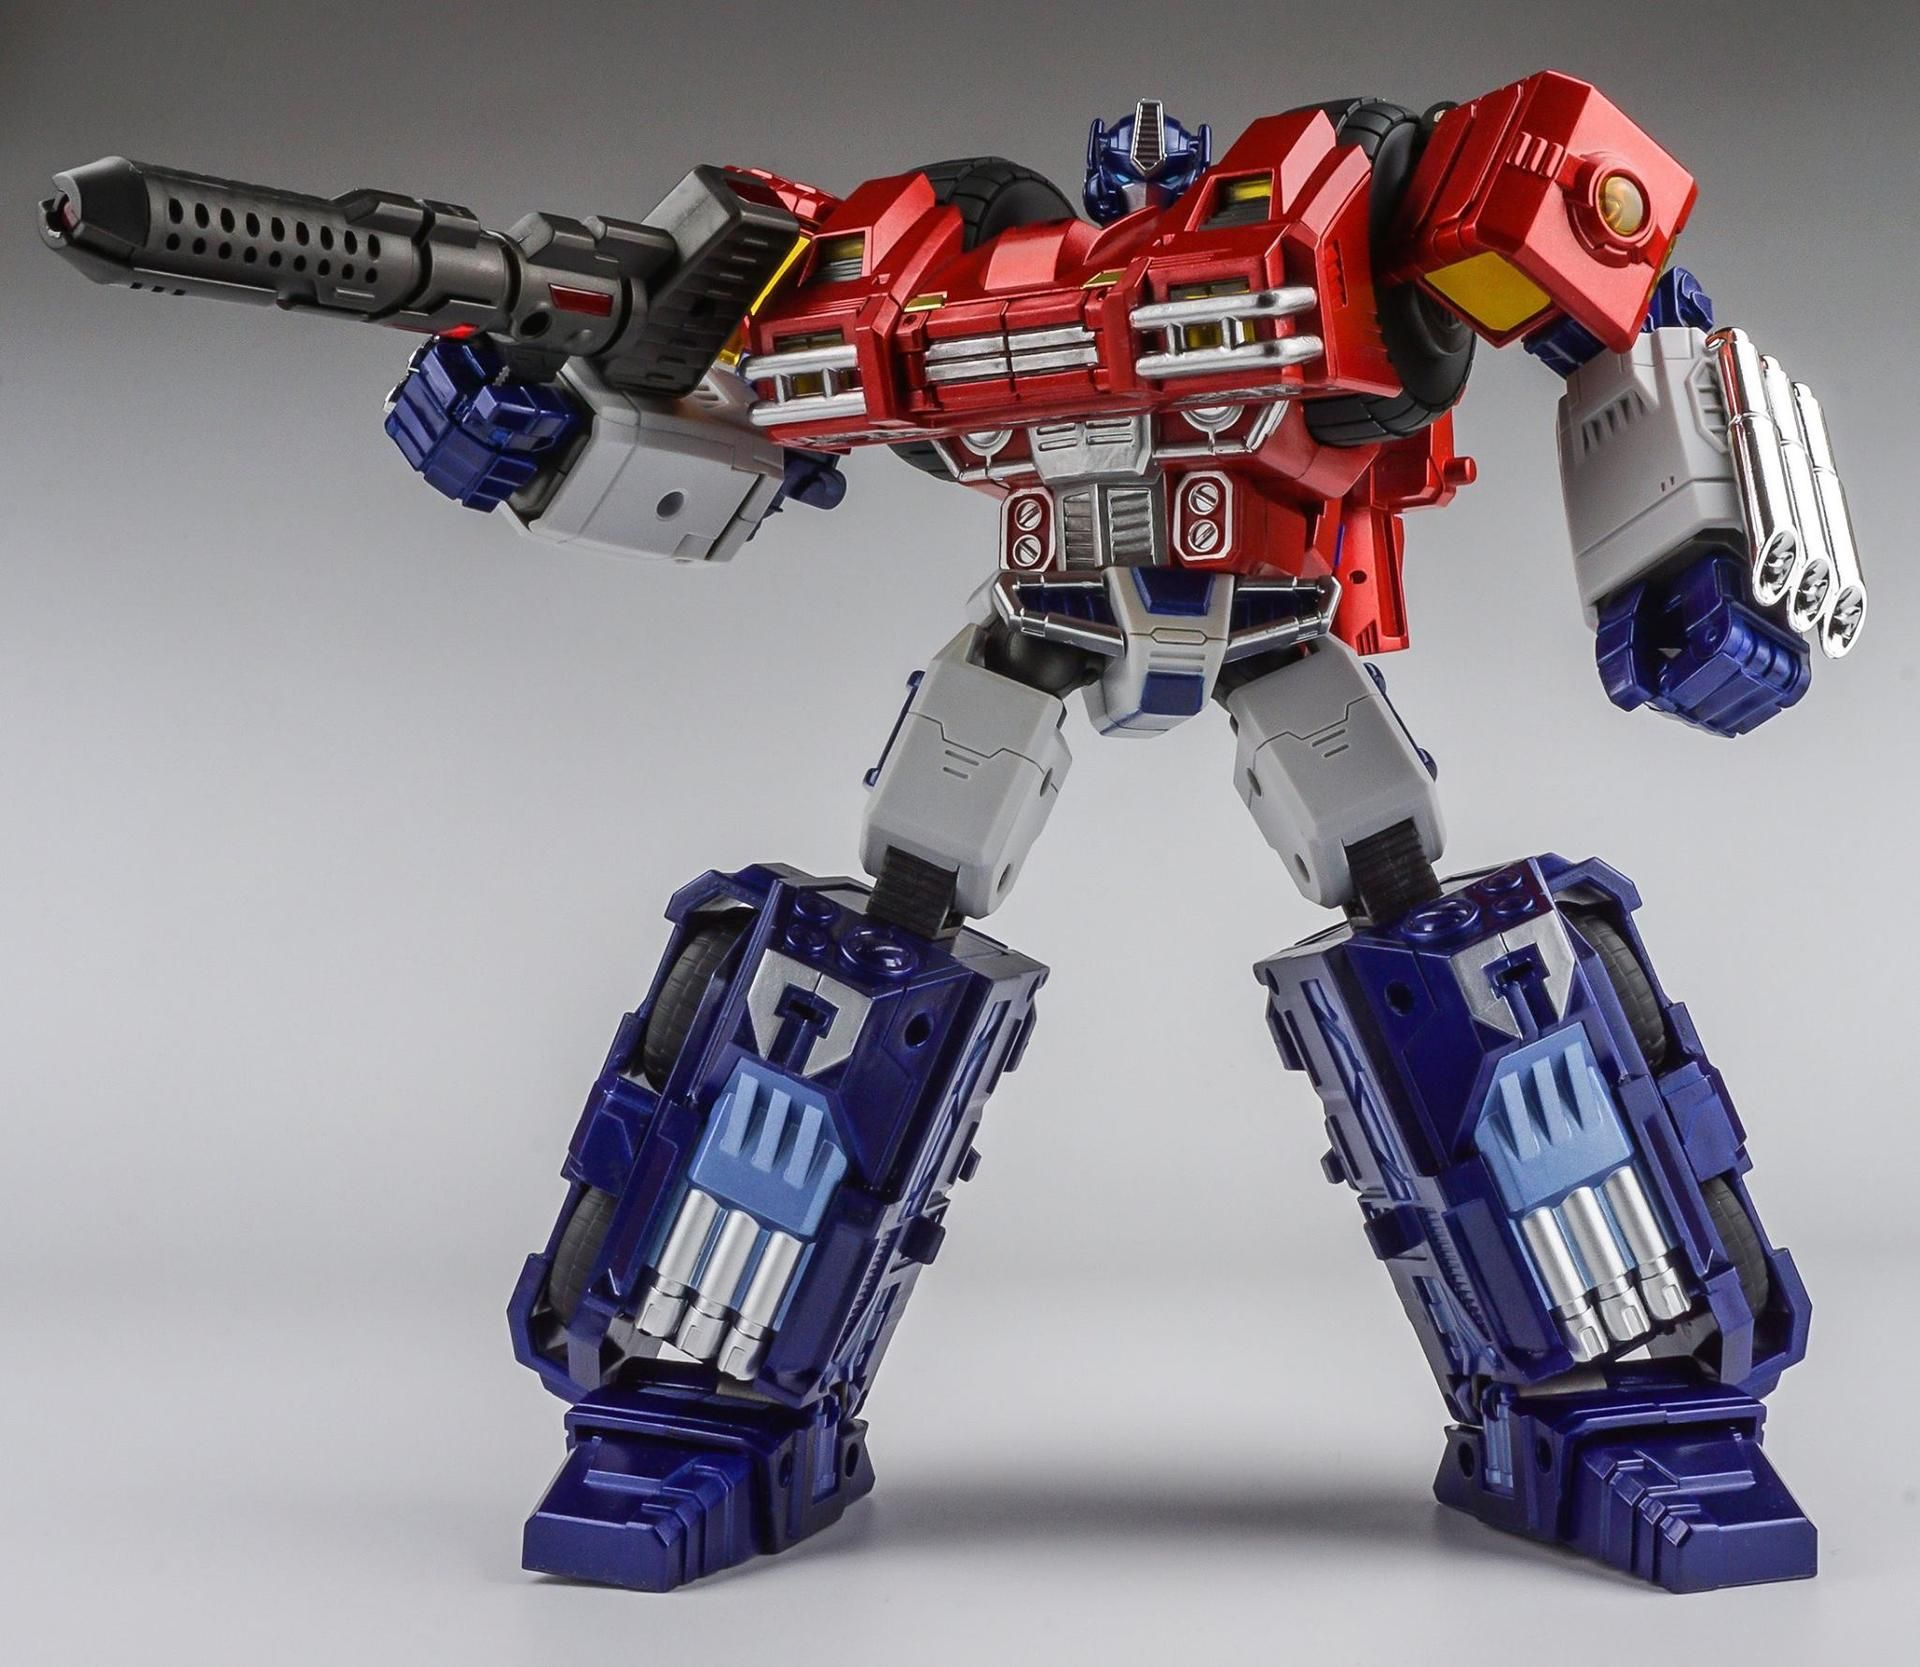 Pin On 3rd Party Transformers